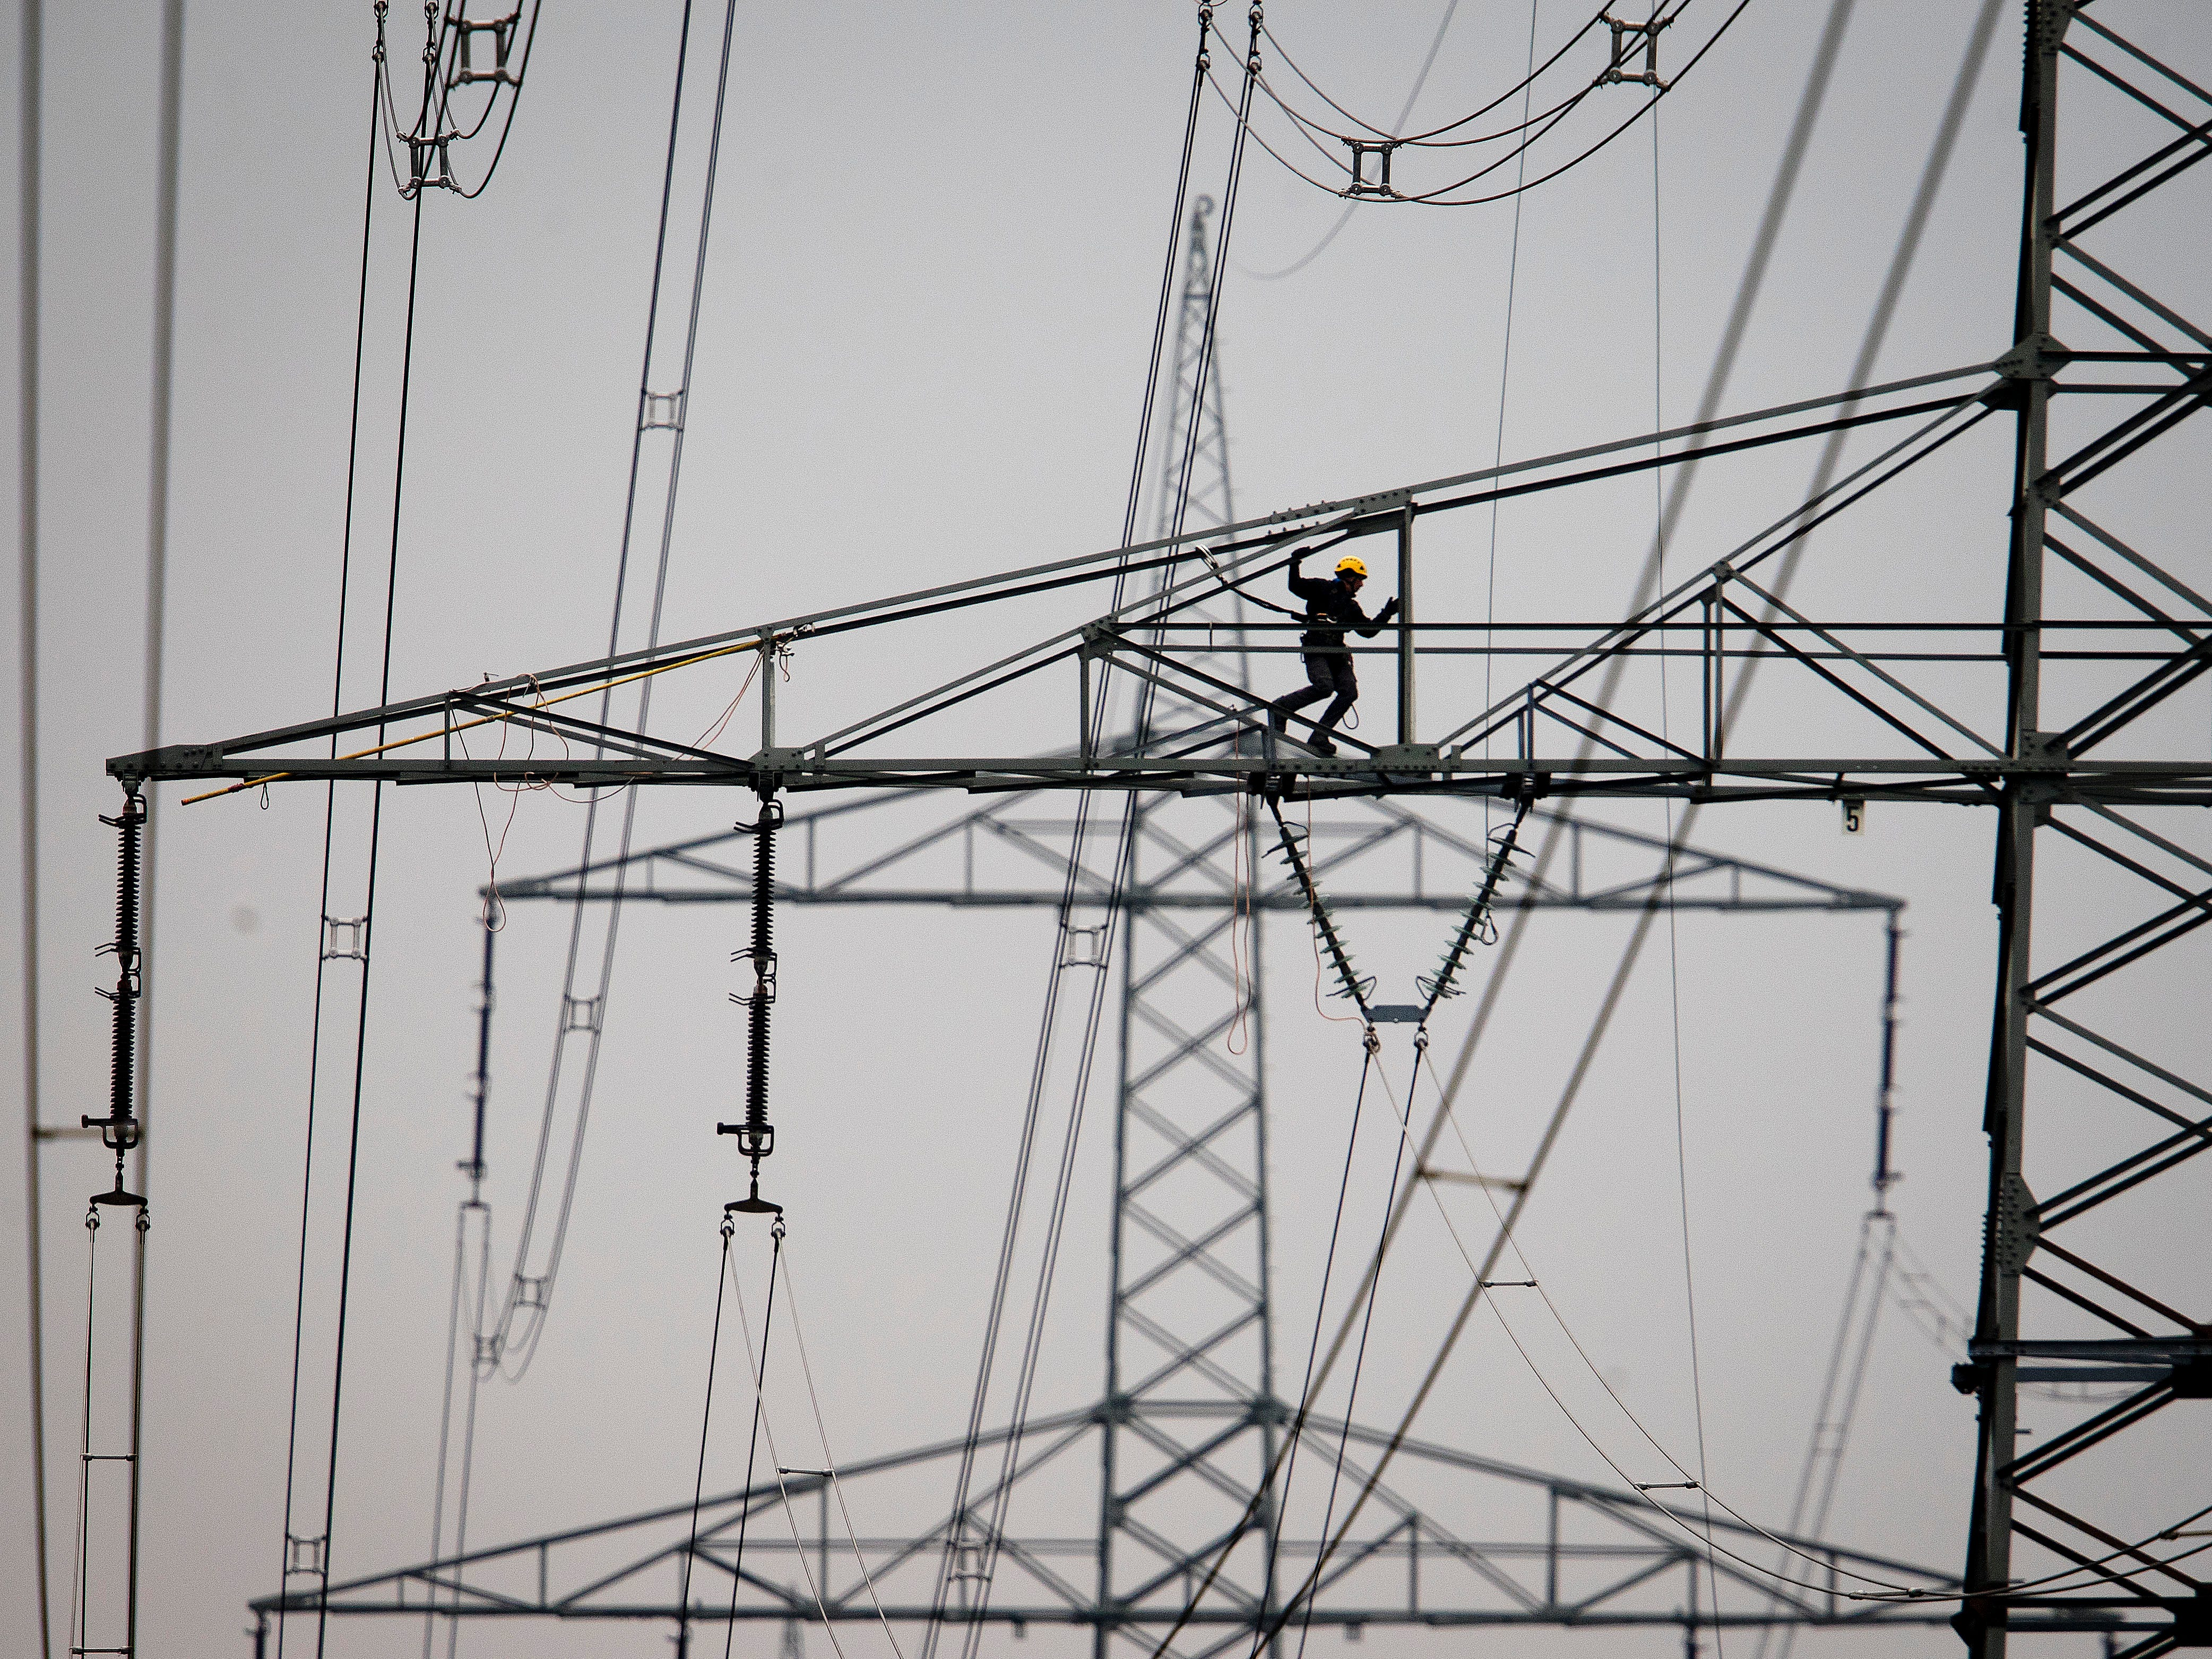 A technician works on high-voltage pylons in Frankfurt, Germany, Tuesday, April 9, 2019.